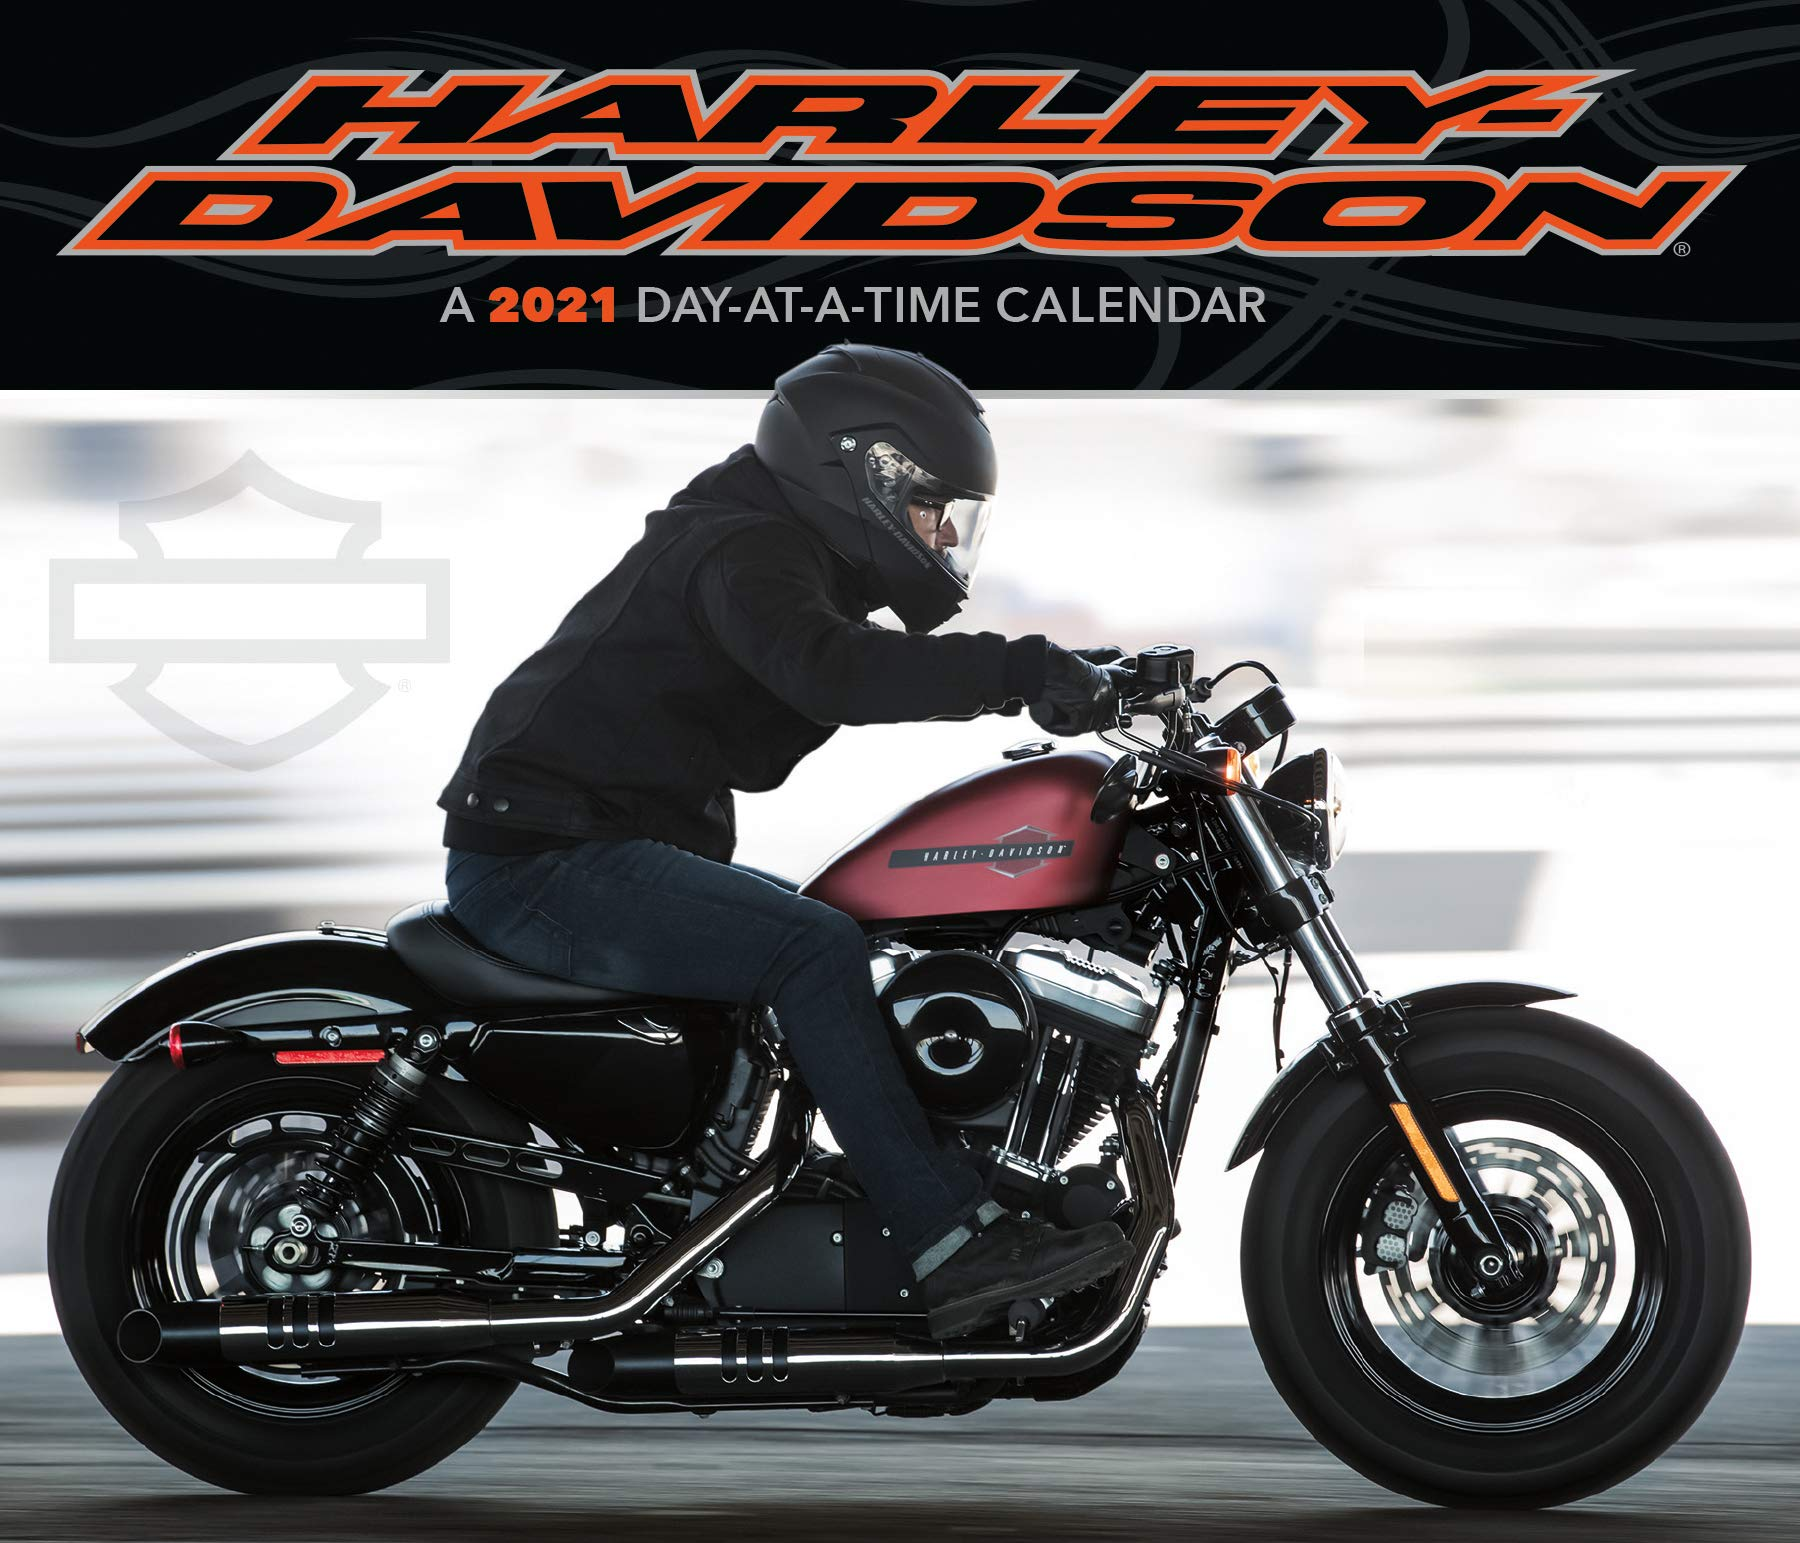 2021 Harley Davidson Day at a Time Box Calendar: Trends